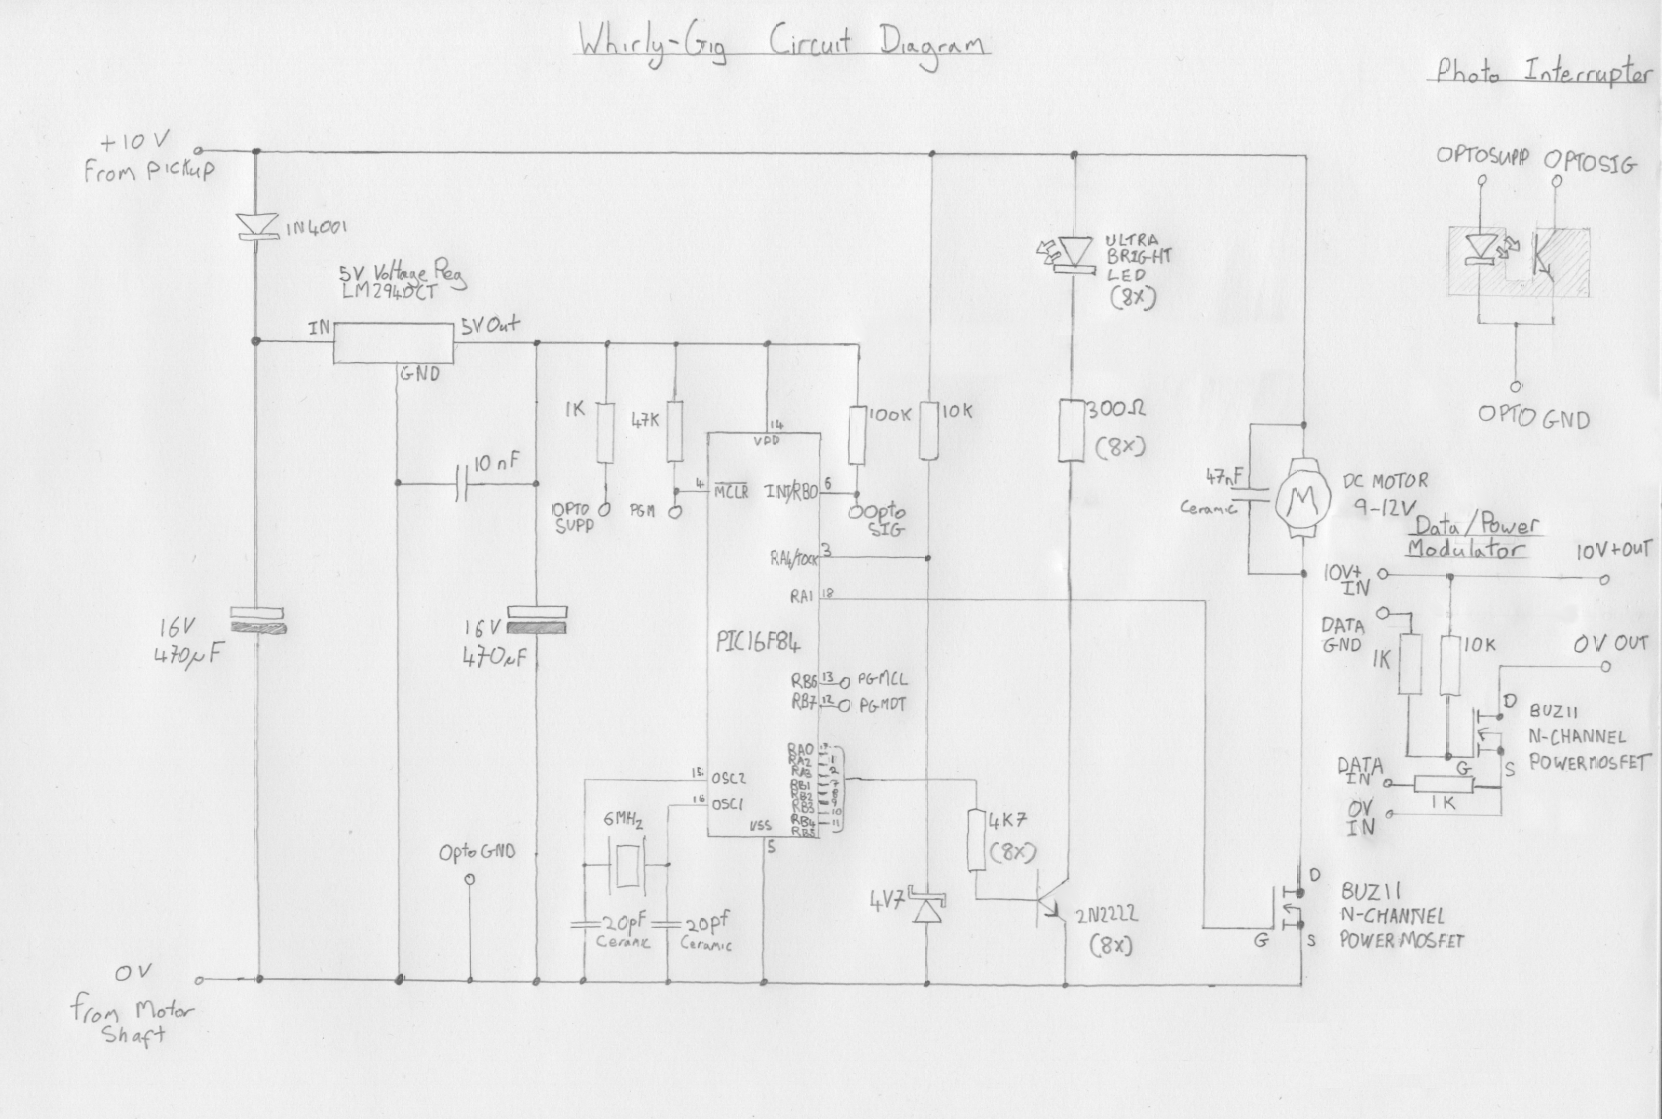 Whirlygig Simple Power Saver Circuit Schematic Diagram The